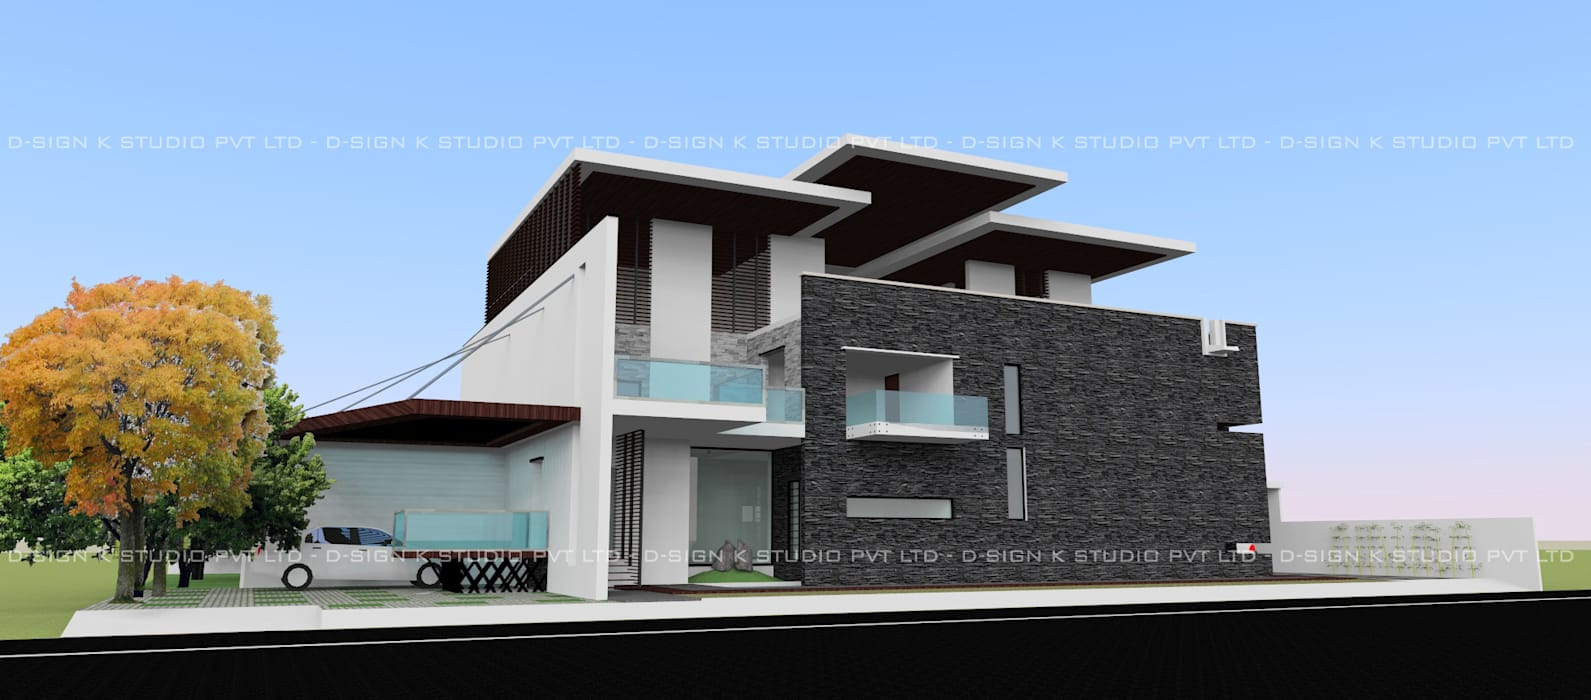 Hill View Residential bungalow for Mr.Anandha Krishnan: modern Houses by D-SiGN KSTUDIO™ PVT LTD ARCHITECTS + INTERIORS + LANDSCAPING